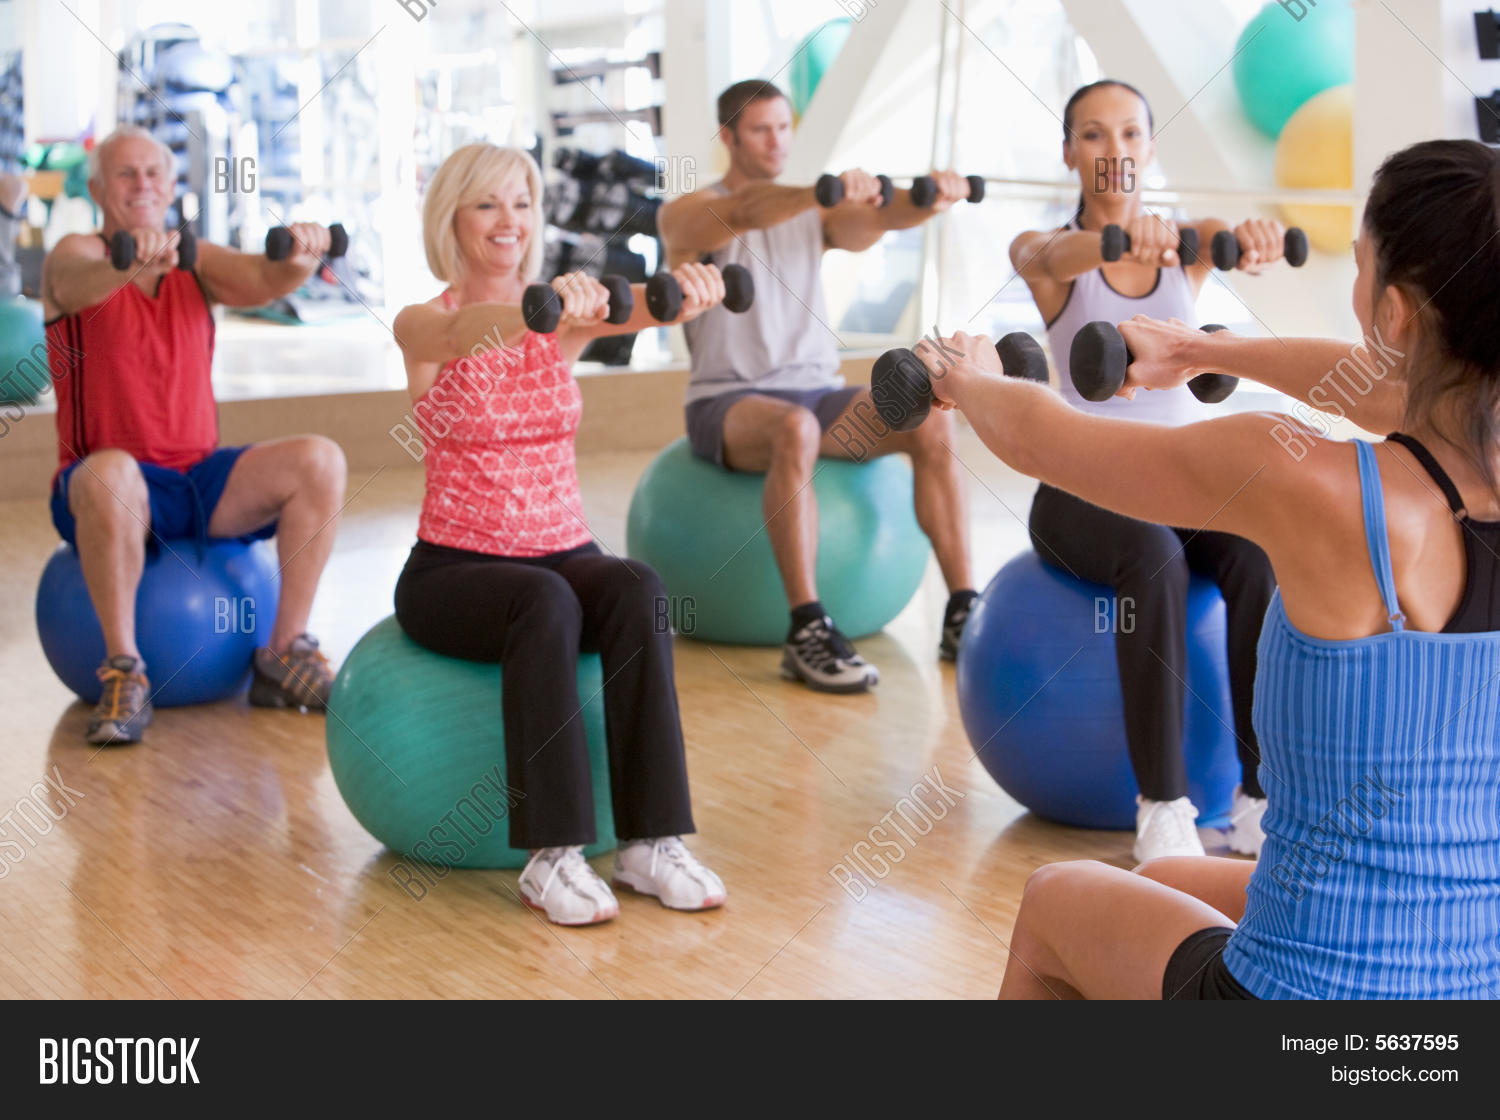 at the gym essay Please post your essay, or what you have completed, so we can take a look at it and help you with your assignment i would post the essay first here so we can help you you know, it might just be an error with the computer maybe your gym teacher put the wrong grade in he/she gave you a zero that.